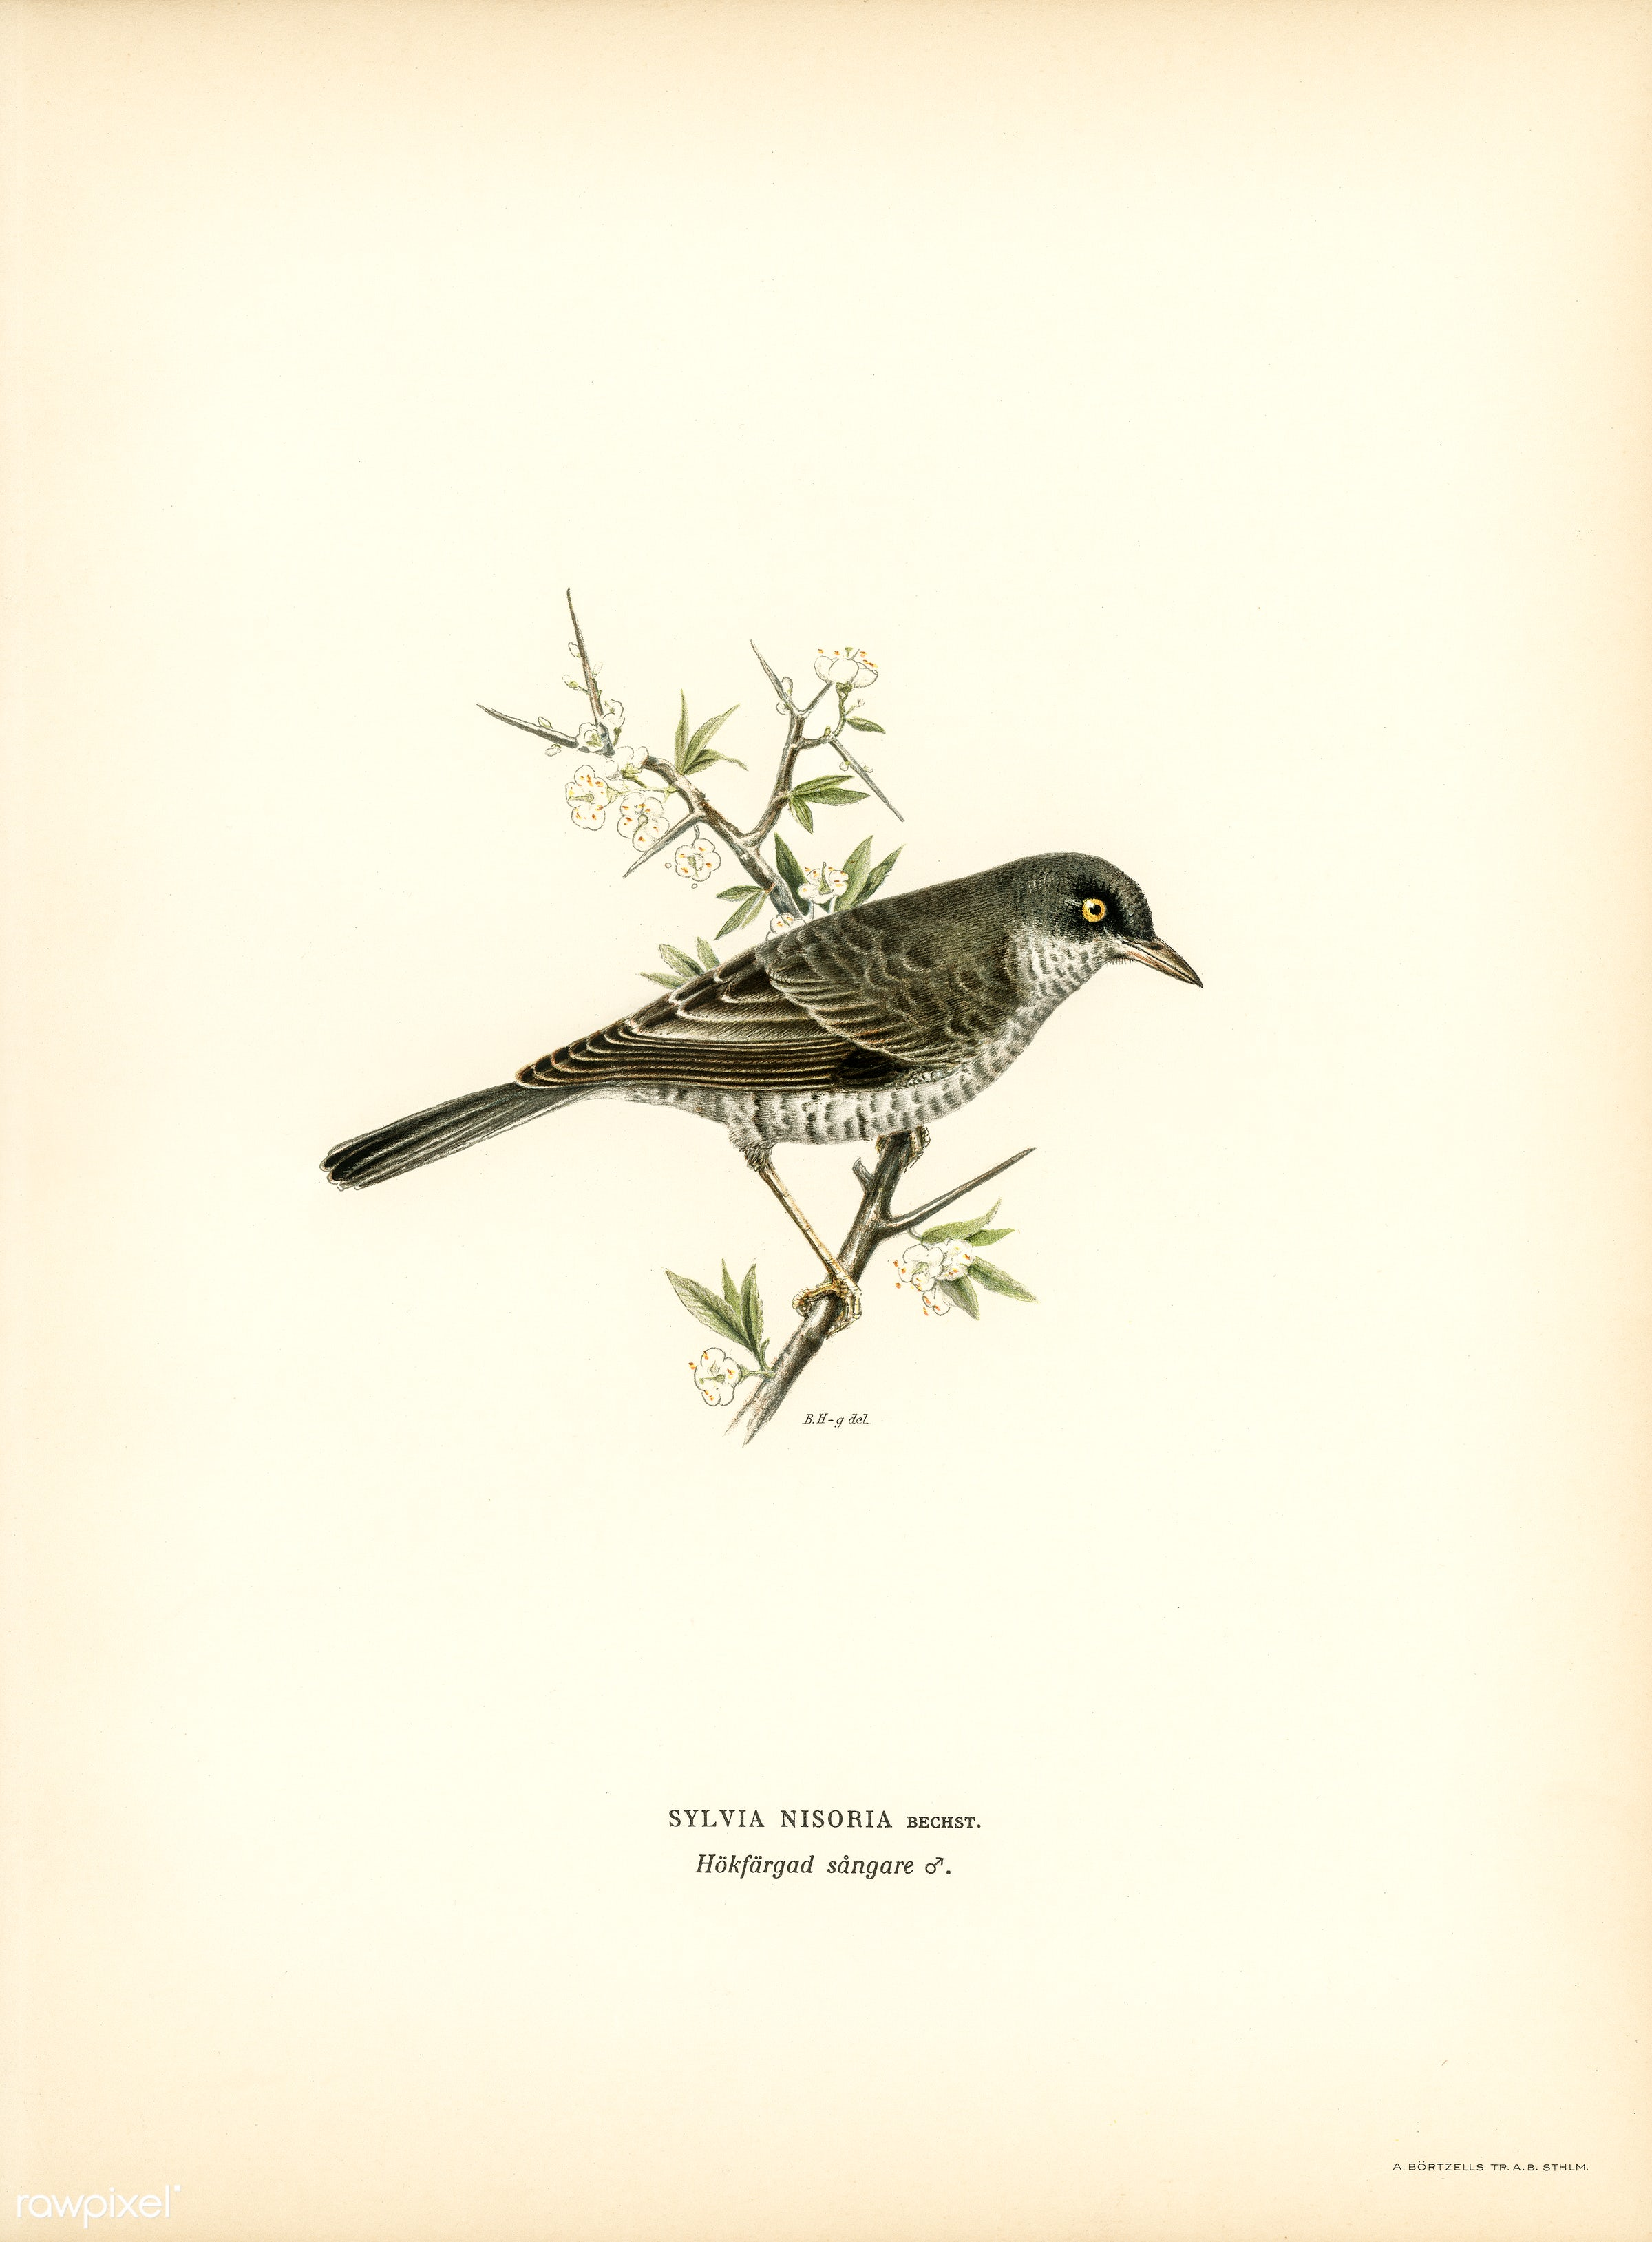 Barred warbler ♂ (Sylvia nisoria) illustrated by the von Wright brothers. Digitally enhanced from our own 1929 folio version...